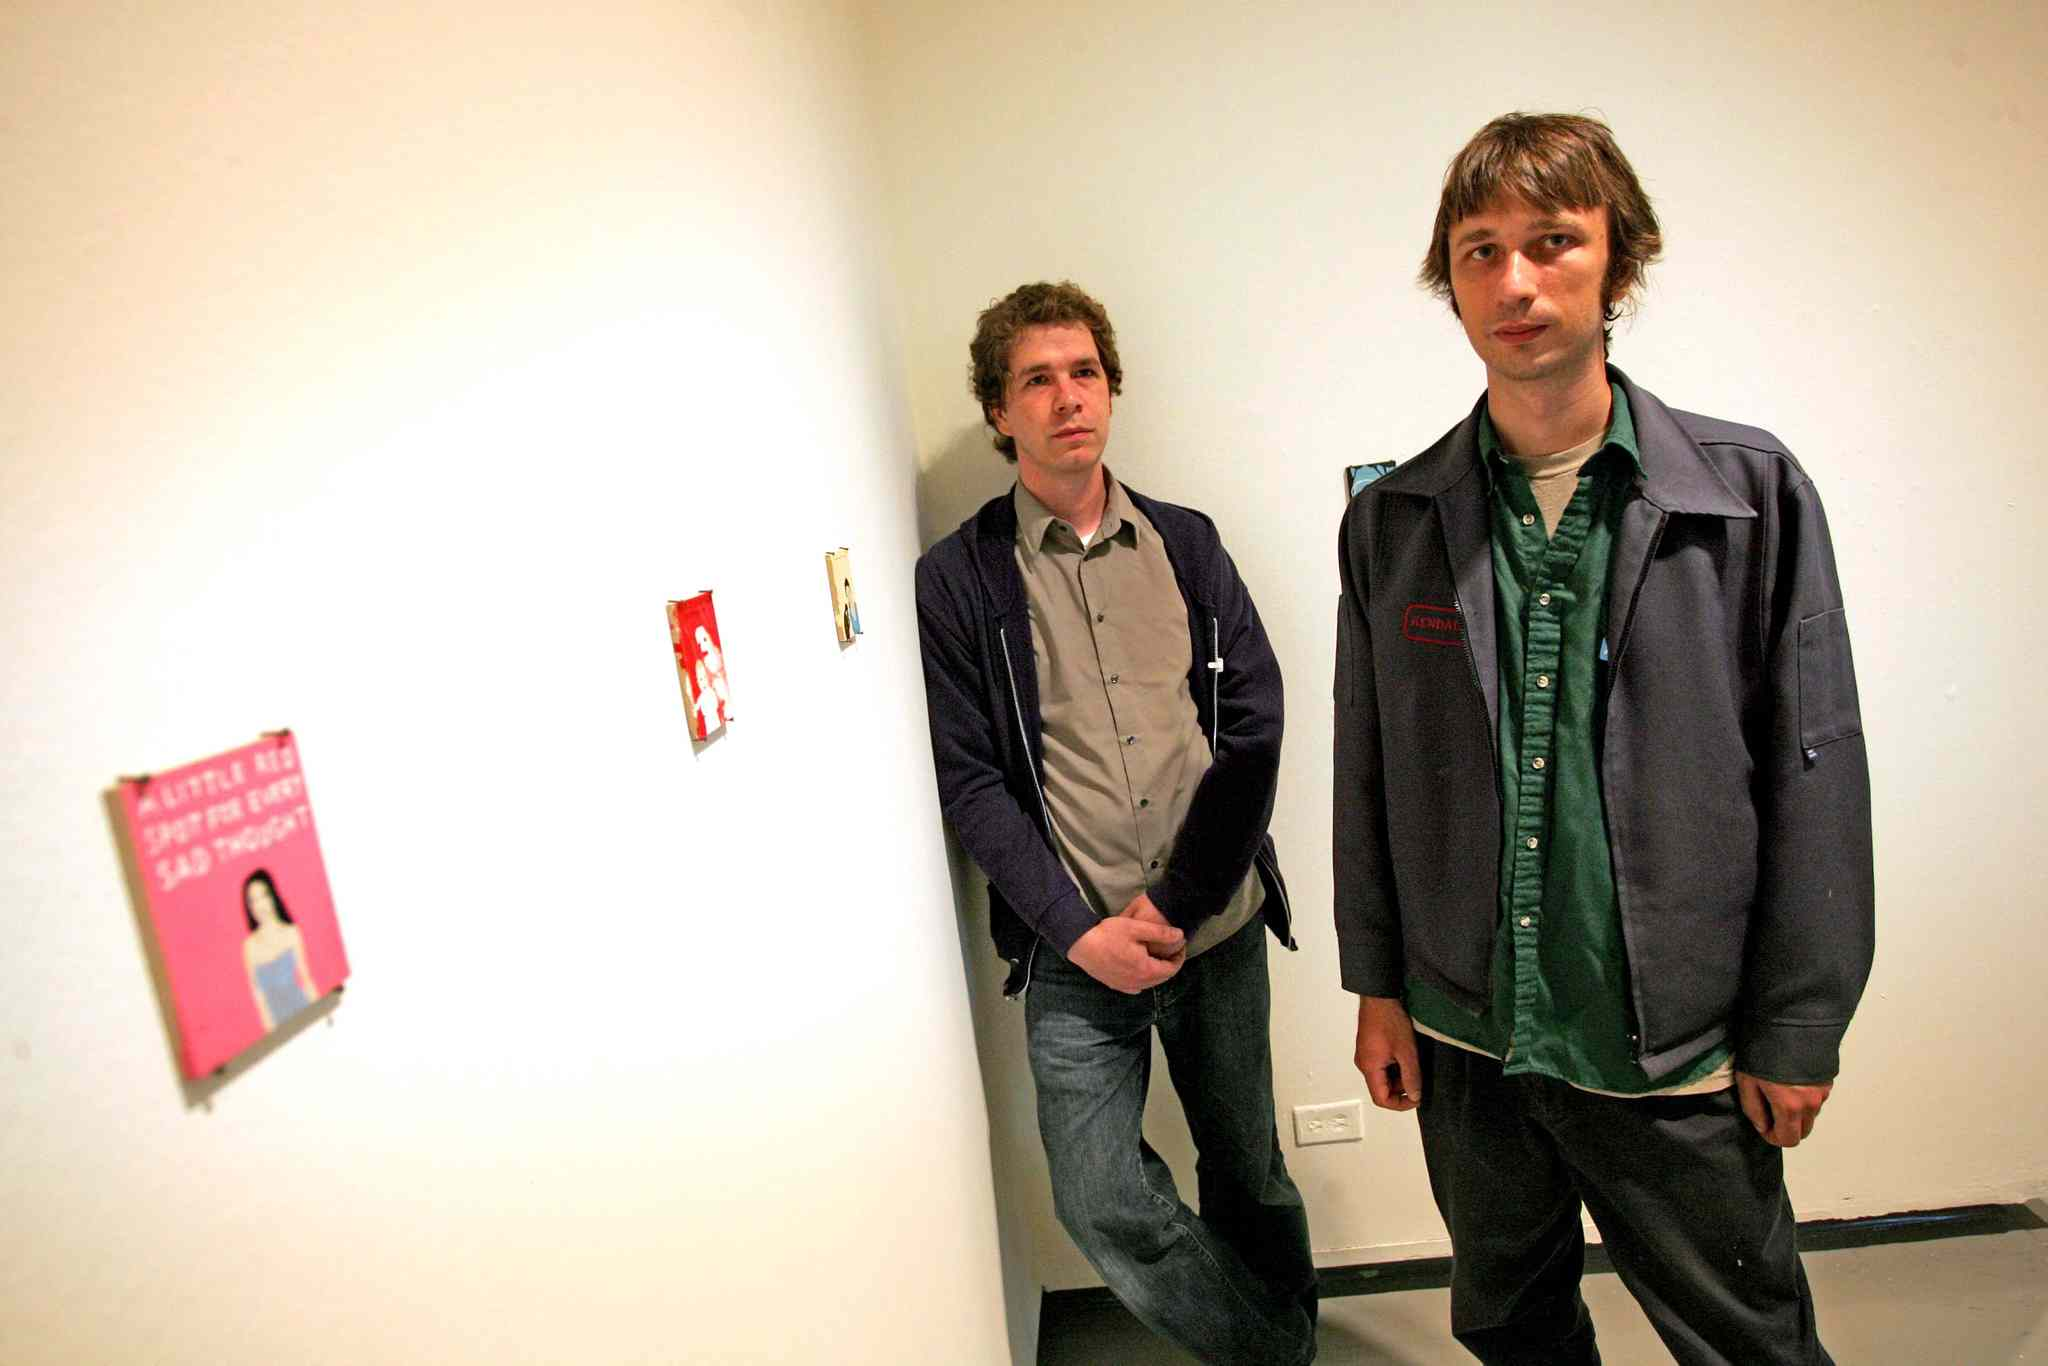 Michael Dumontier and Neil Farber at their show 'where is here?' at the Winnipeg Art Gallery in 2007.